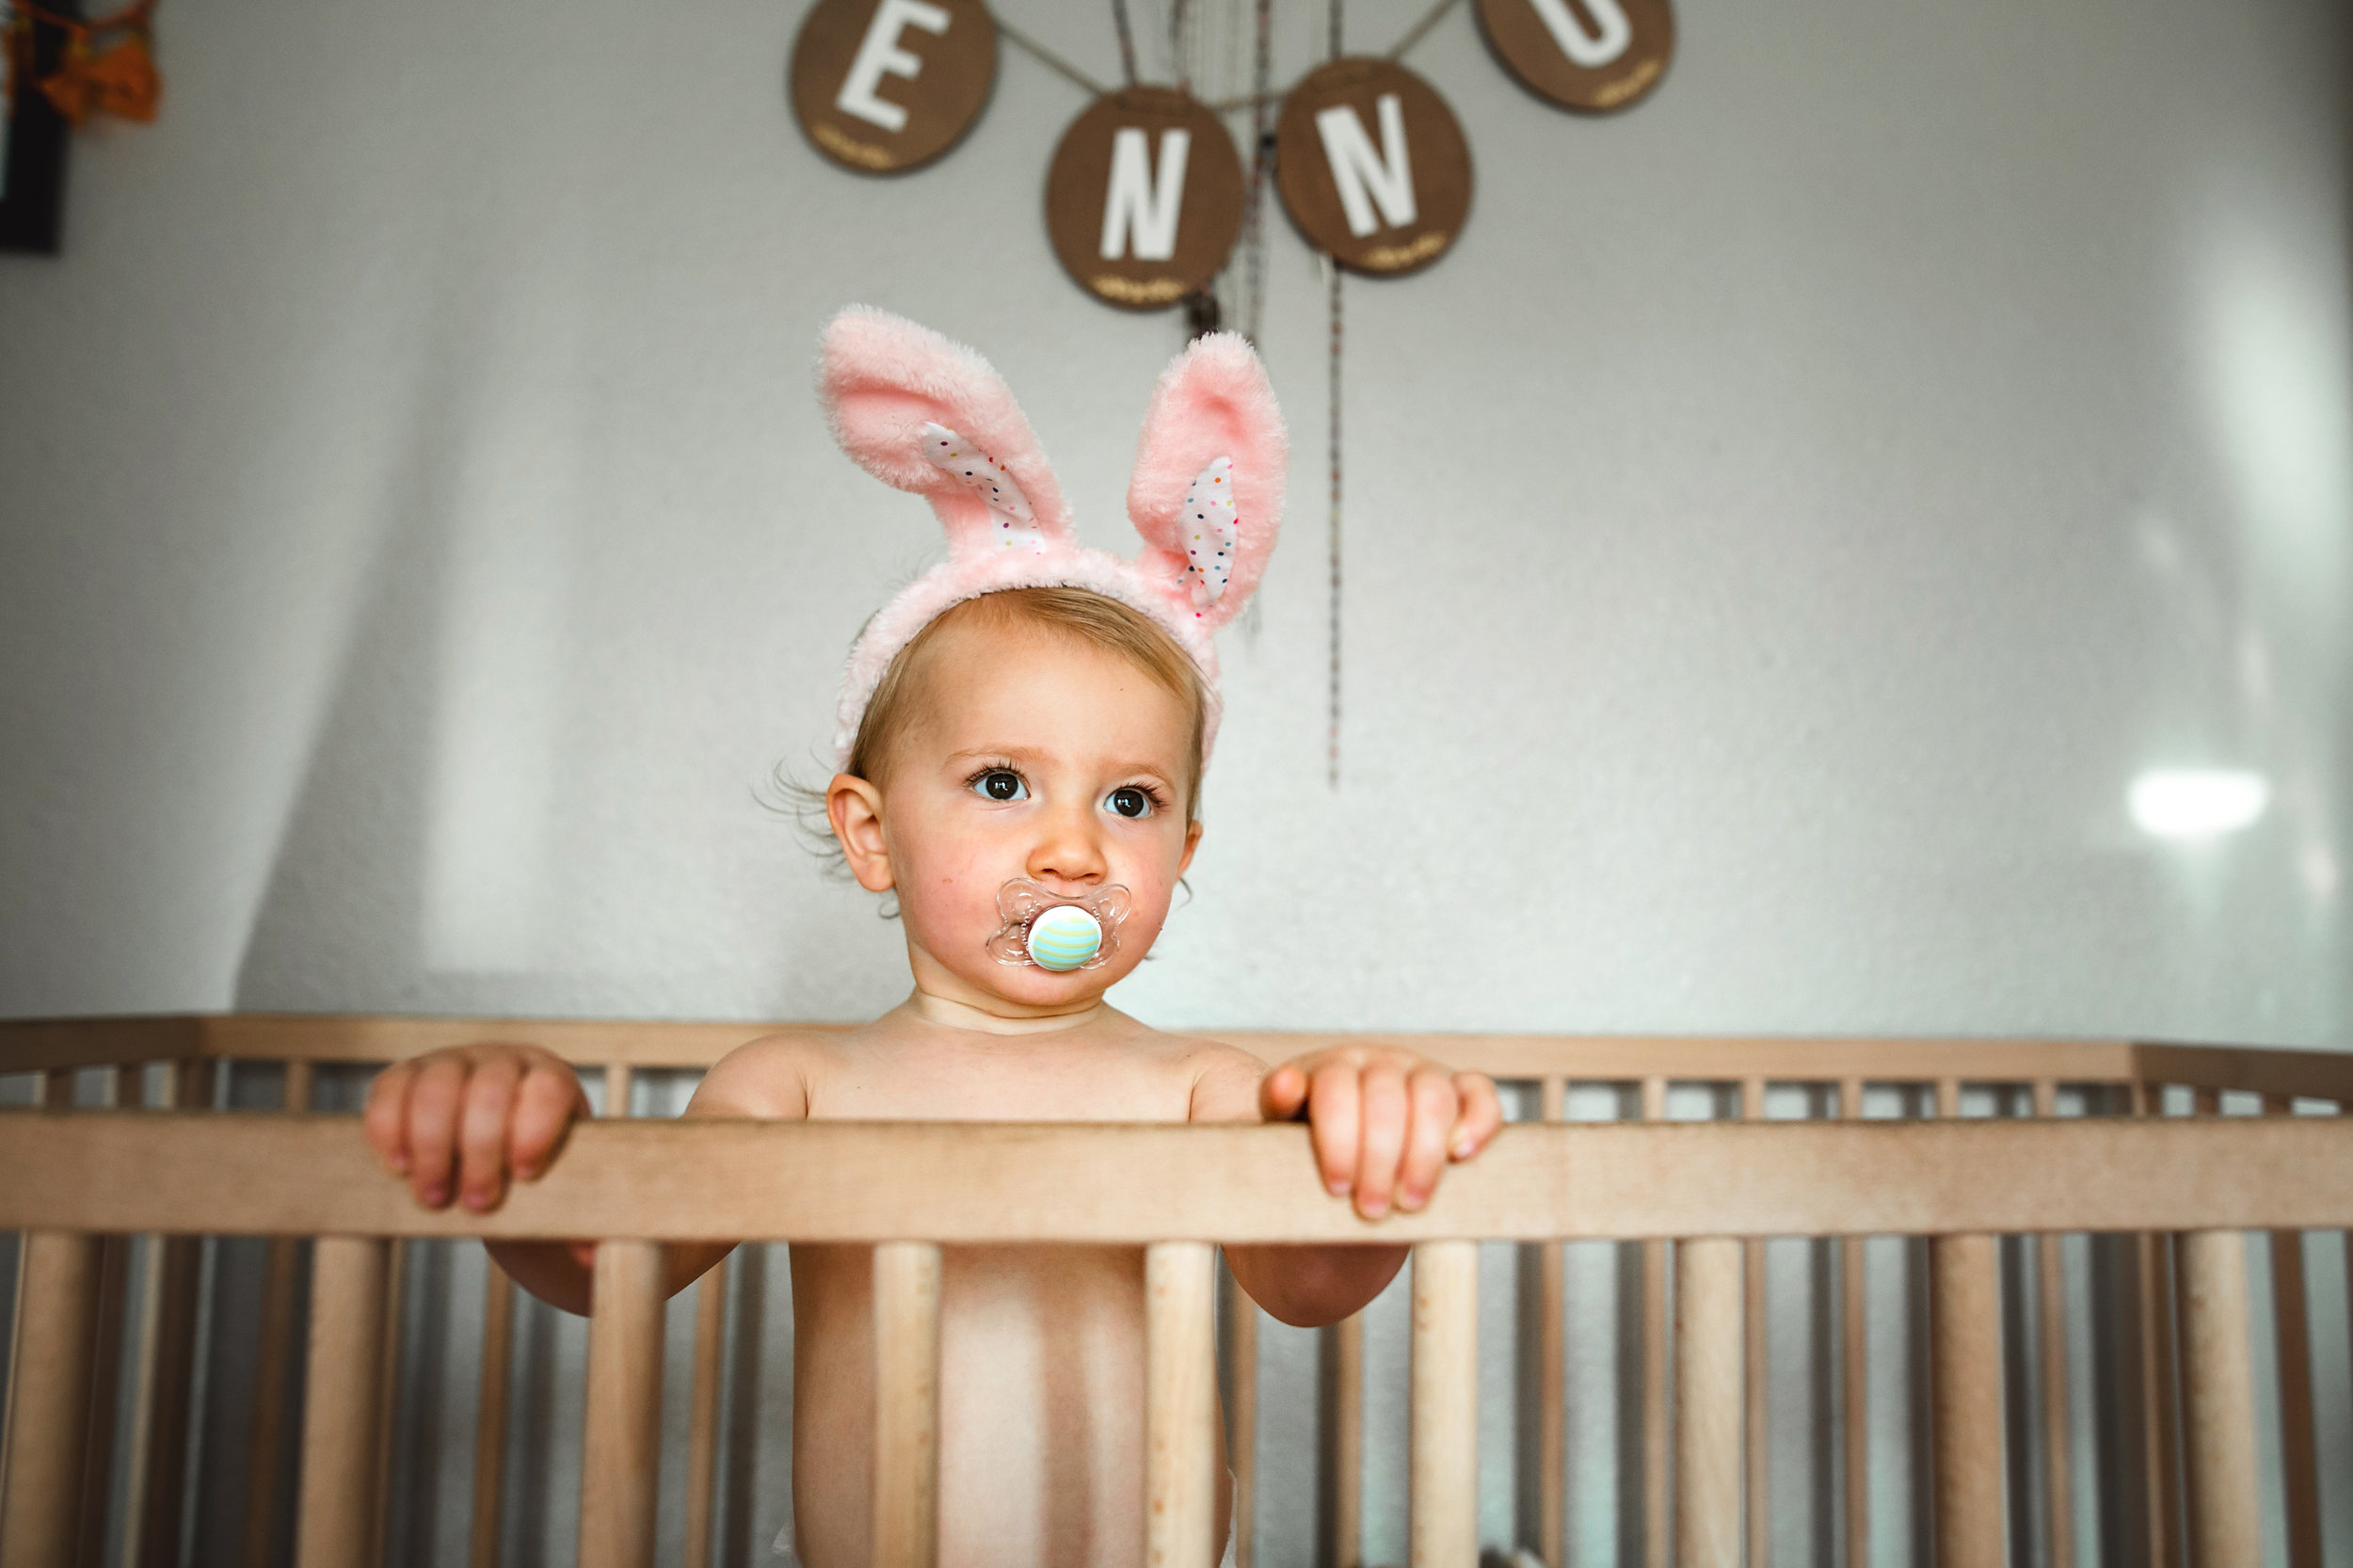 baby plays in crib wearing diaper and bunny ears 6-(ZF-0126-04493-1-013).jpg